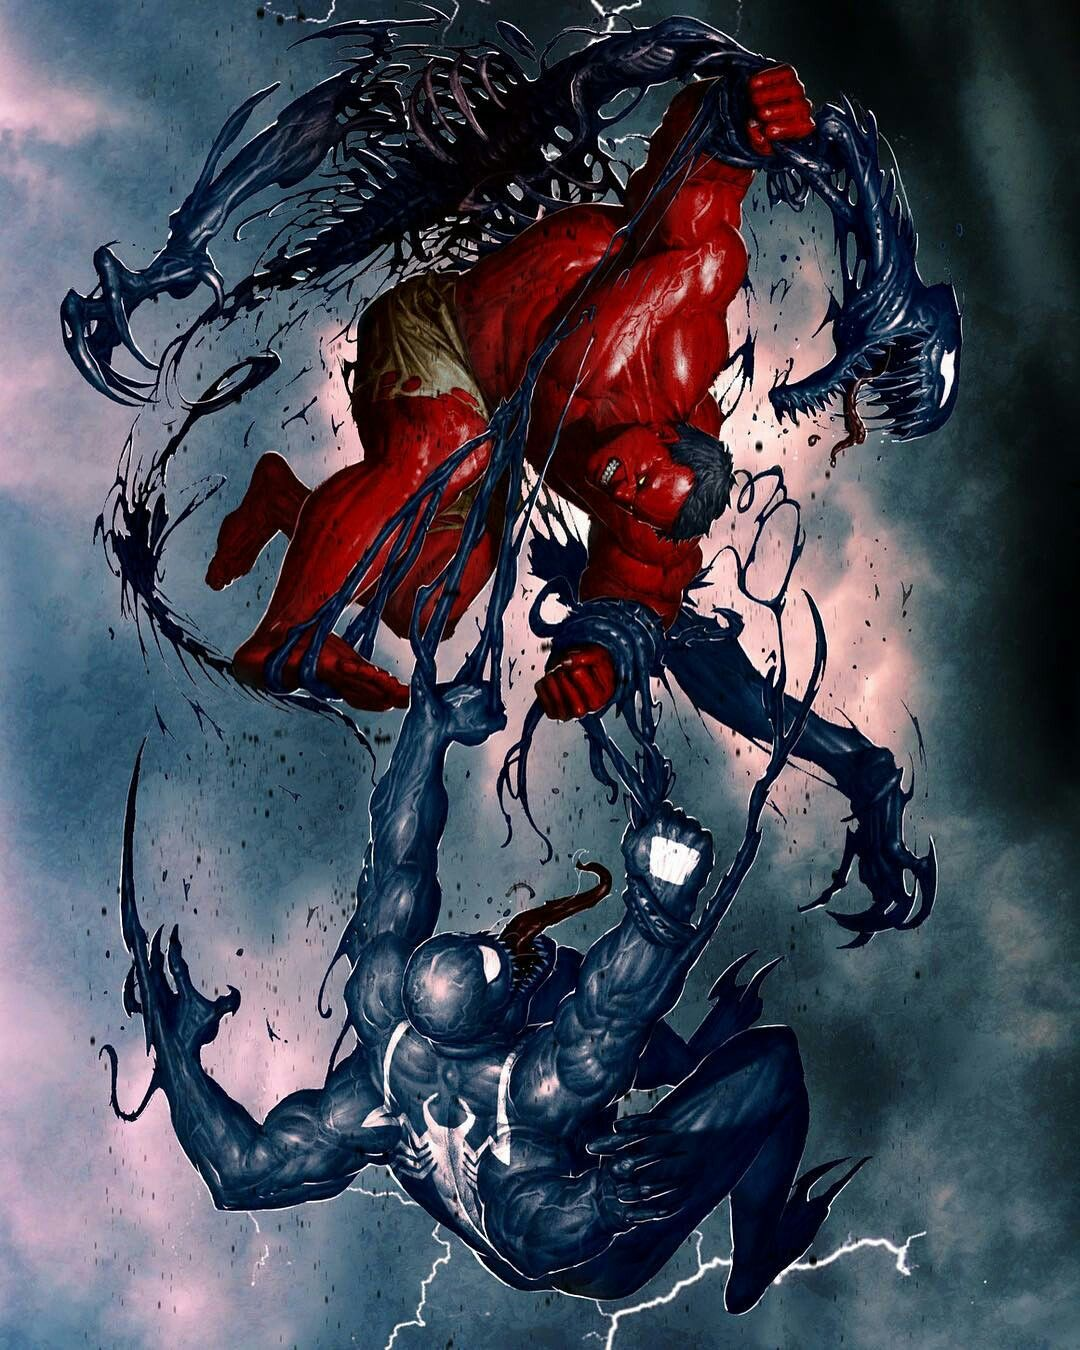 Marvel Comic Book Artwork O Red Hulk Venom Follow Us For More Awesome